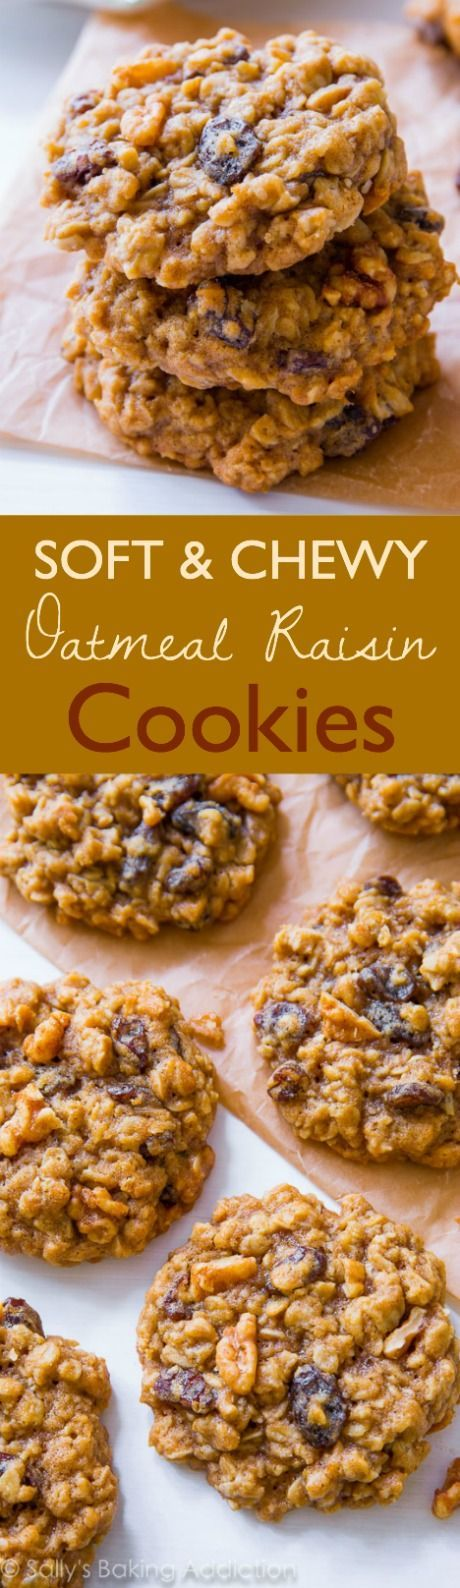 Soft-Baked Oatmeal Raisin Cookies by sallysbakingaddic.... Nothing fancy or complicated, just pure homemade goodness!